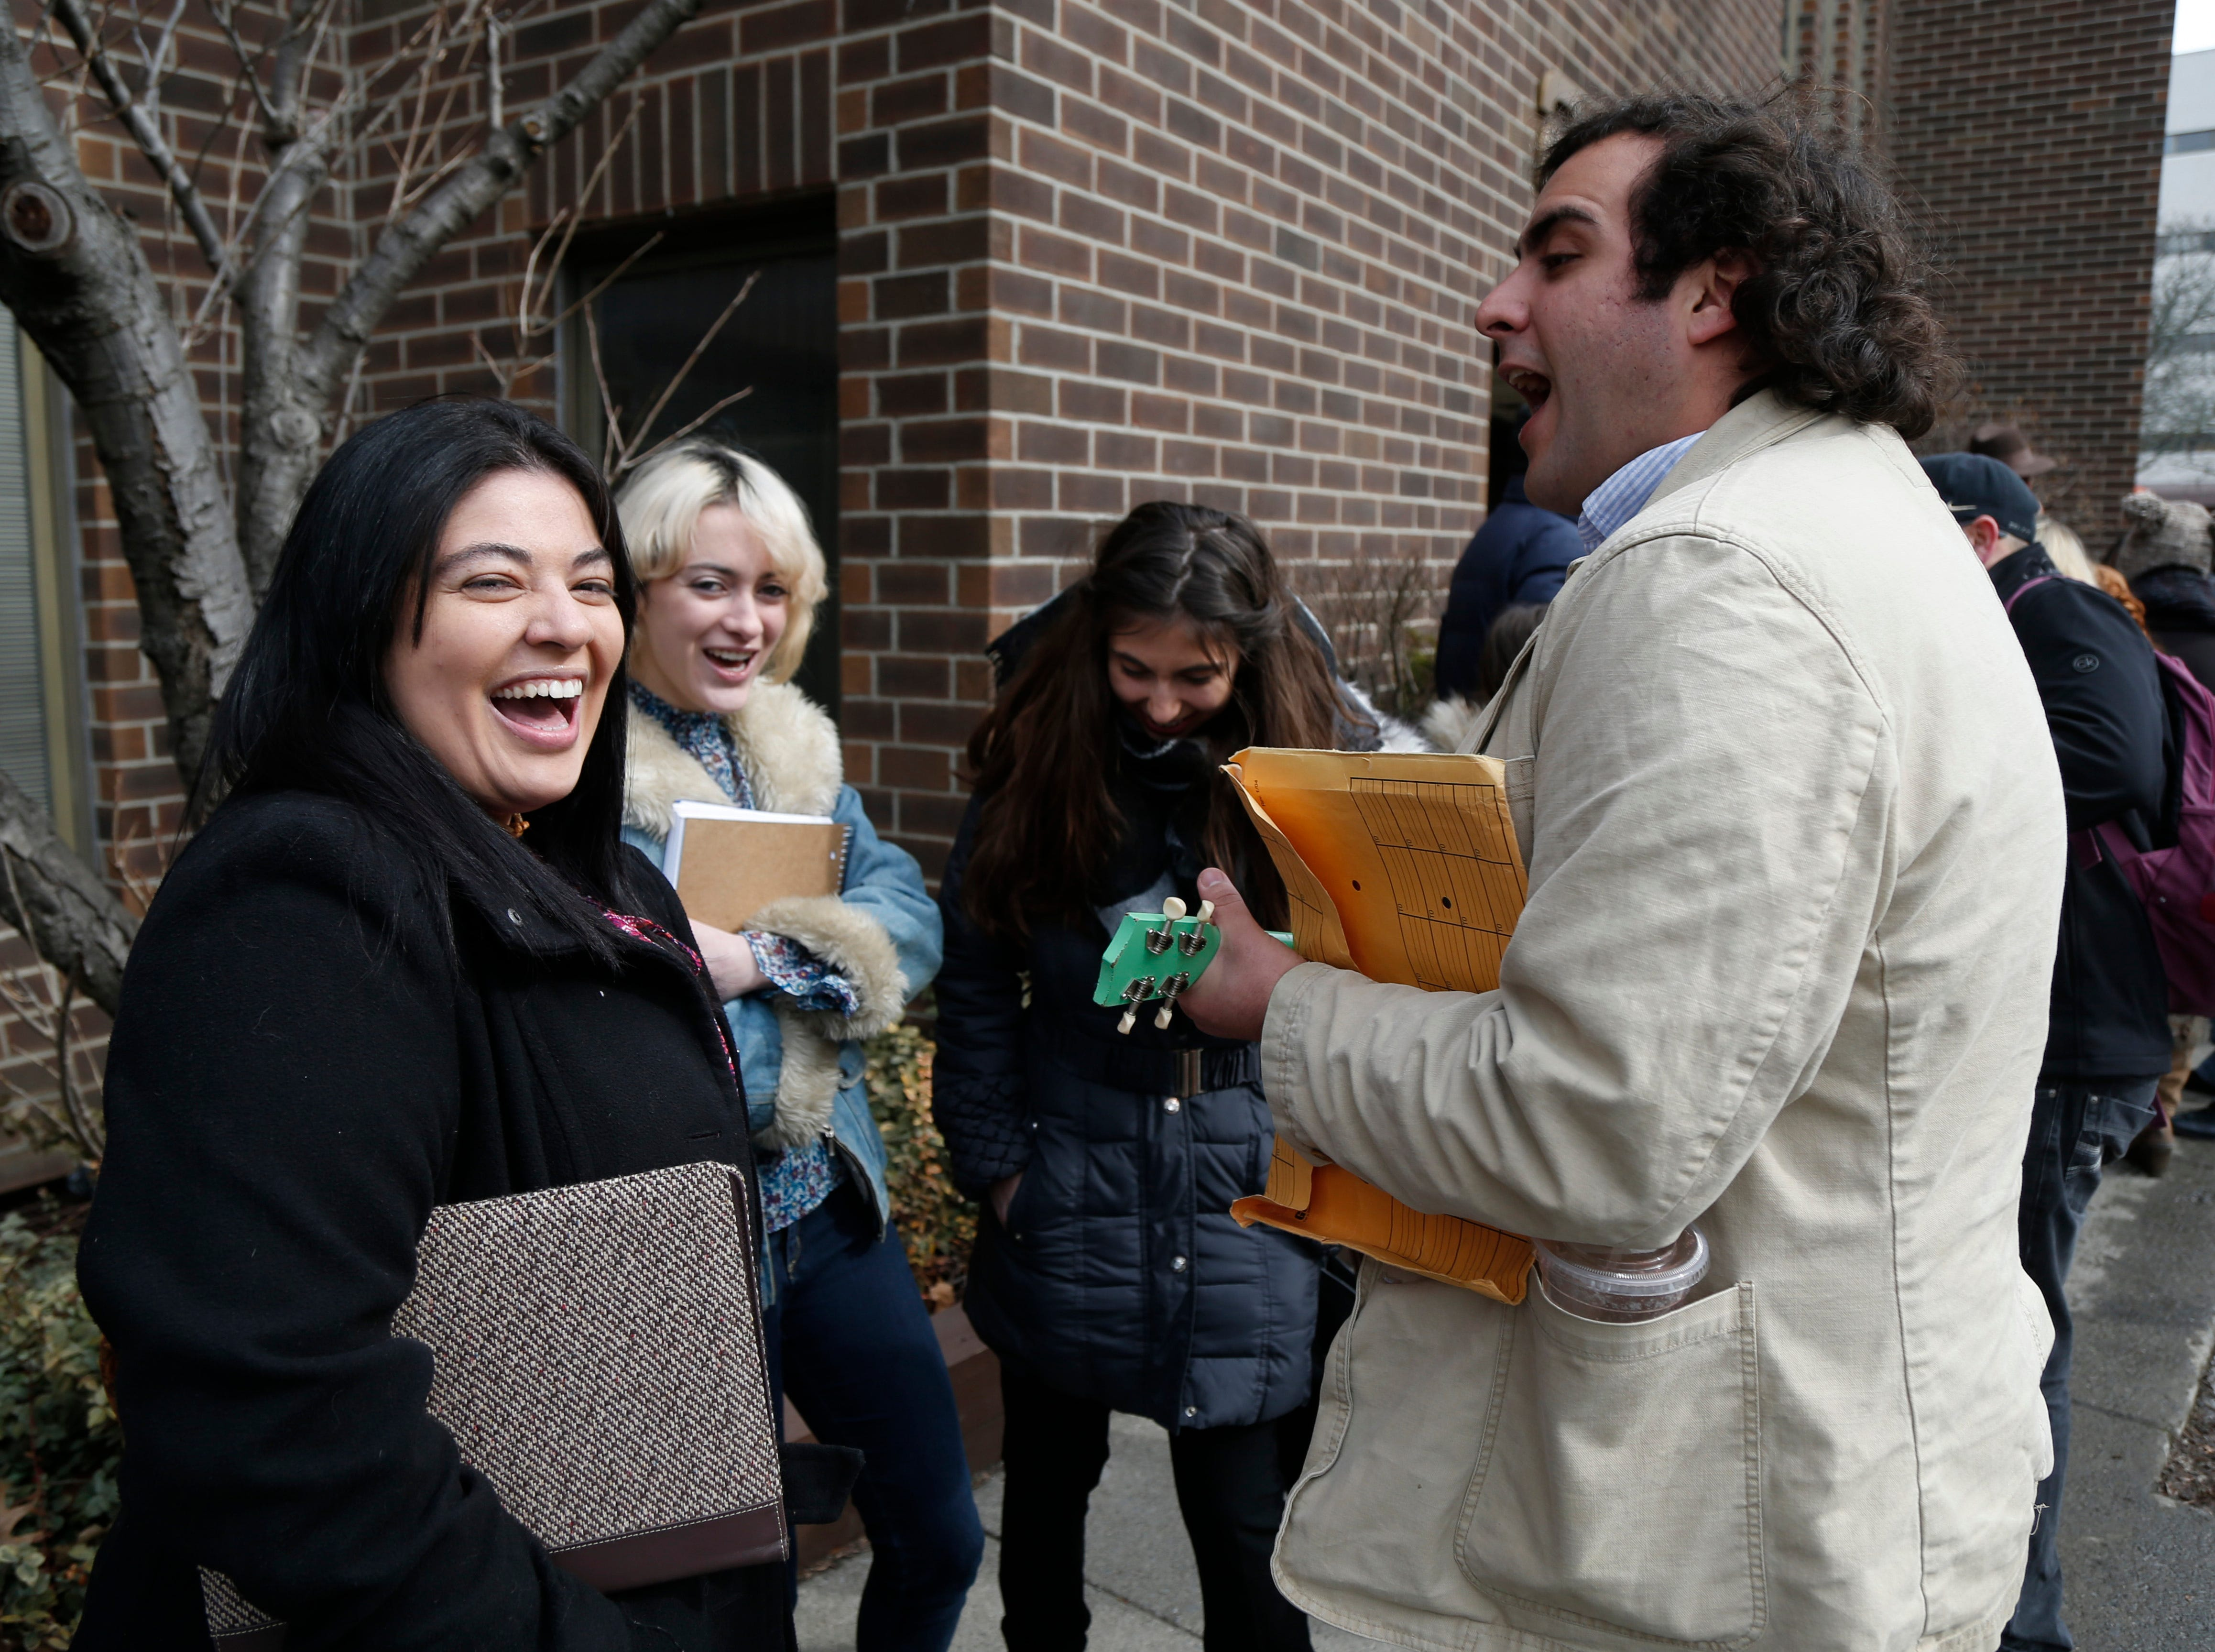 """From left, Jamie Arcelay of Poughkeepsie, Kiley Ronyé of Rosendale, and SUNY New Paltz students Jamie Lazan & Joseph David sing songs while waiting on line outside the Majed J. Nesheiwat Convention Center for Saturday's open casting call for an HBO series staring Mark Ruffalo, called """"I Know This Much is True"""" in the City of Poughkeepsie on Feb 23, 2019."""